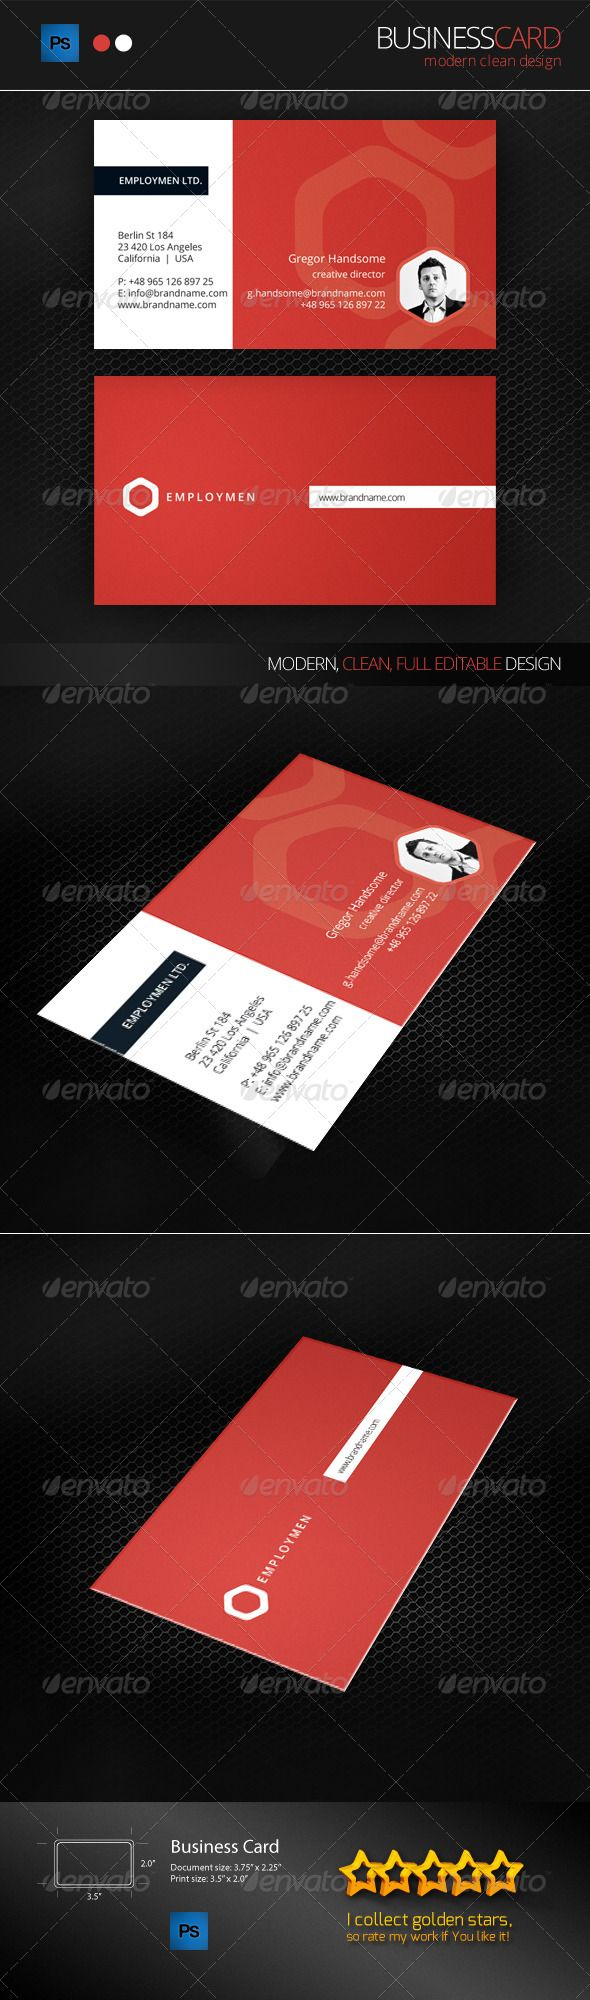 17 best images about print templates on pinterest fonts for Double sided business card template illustrator